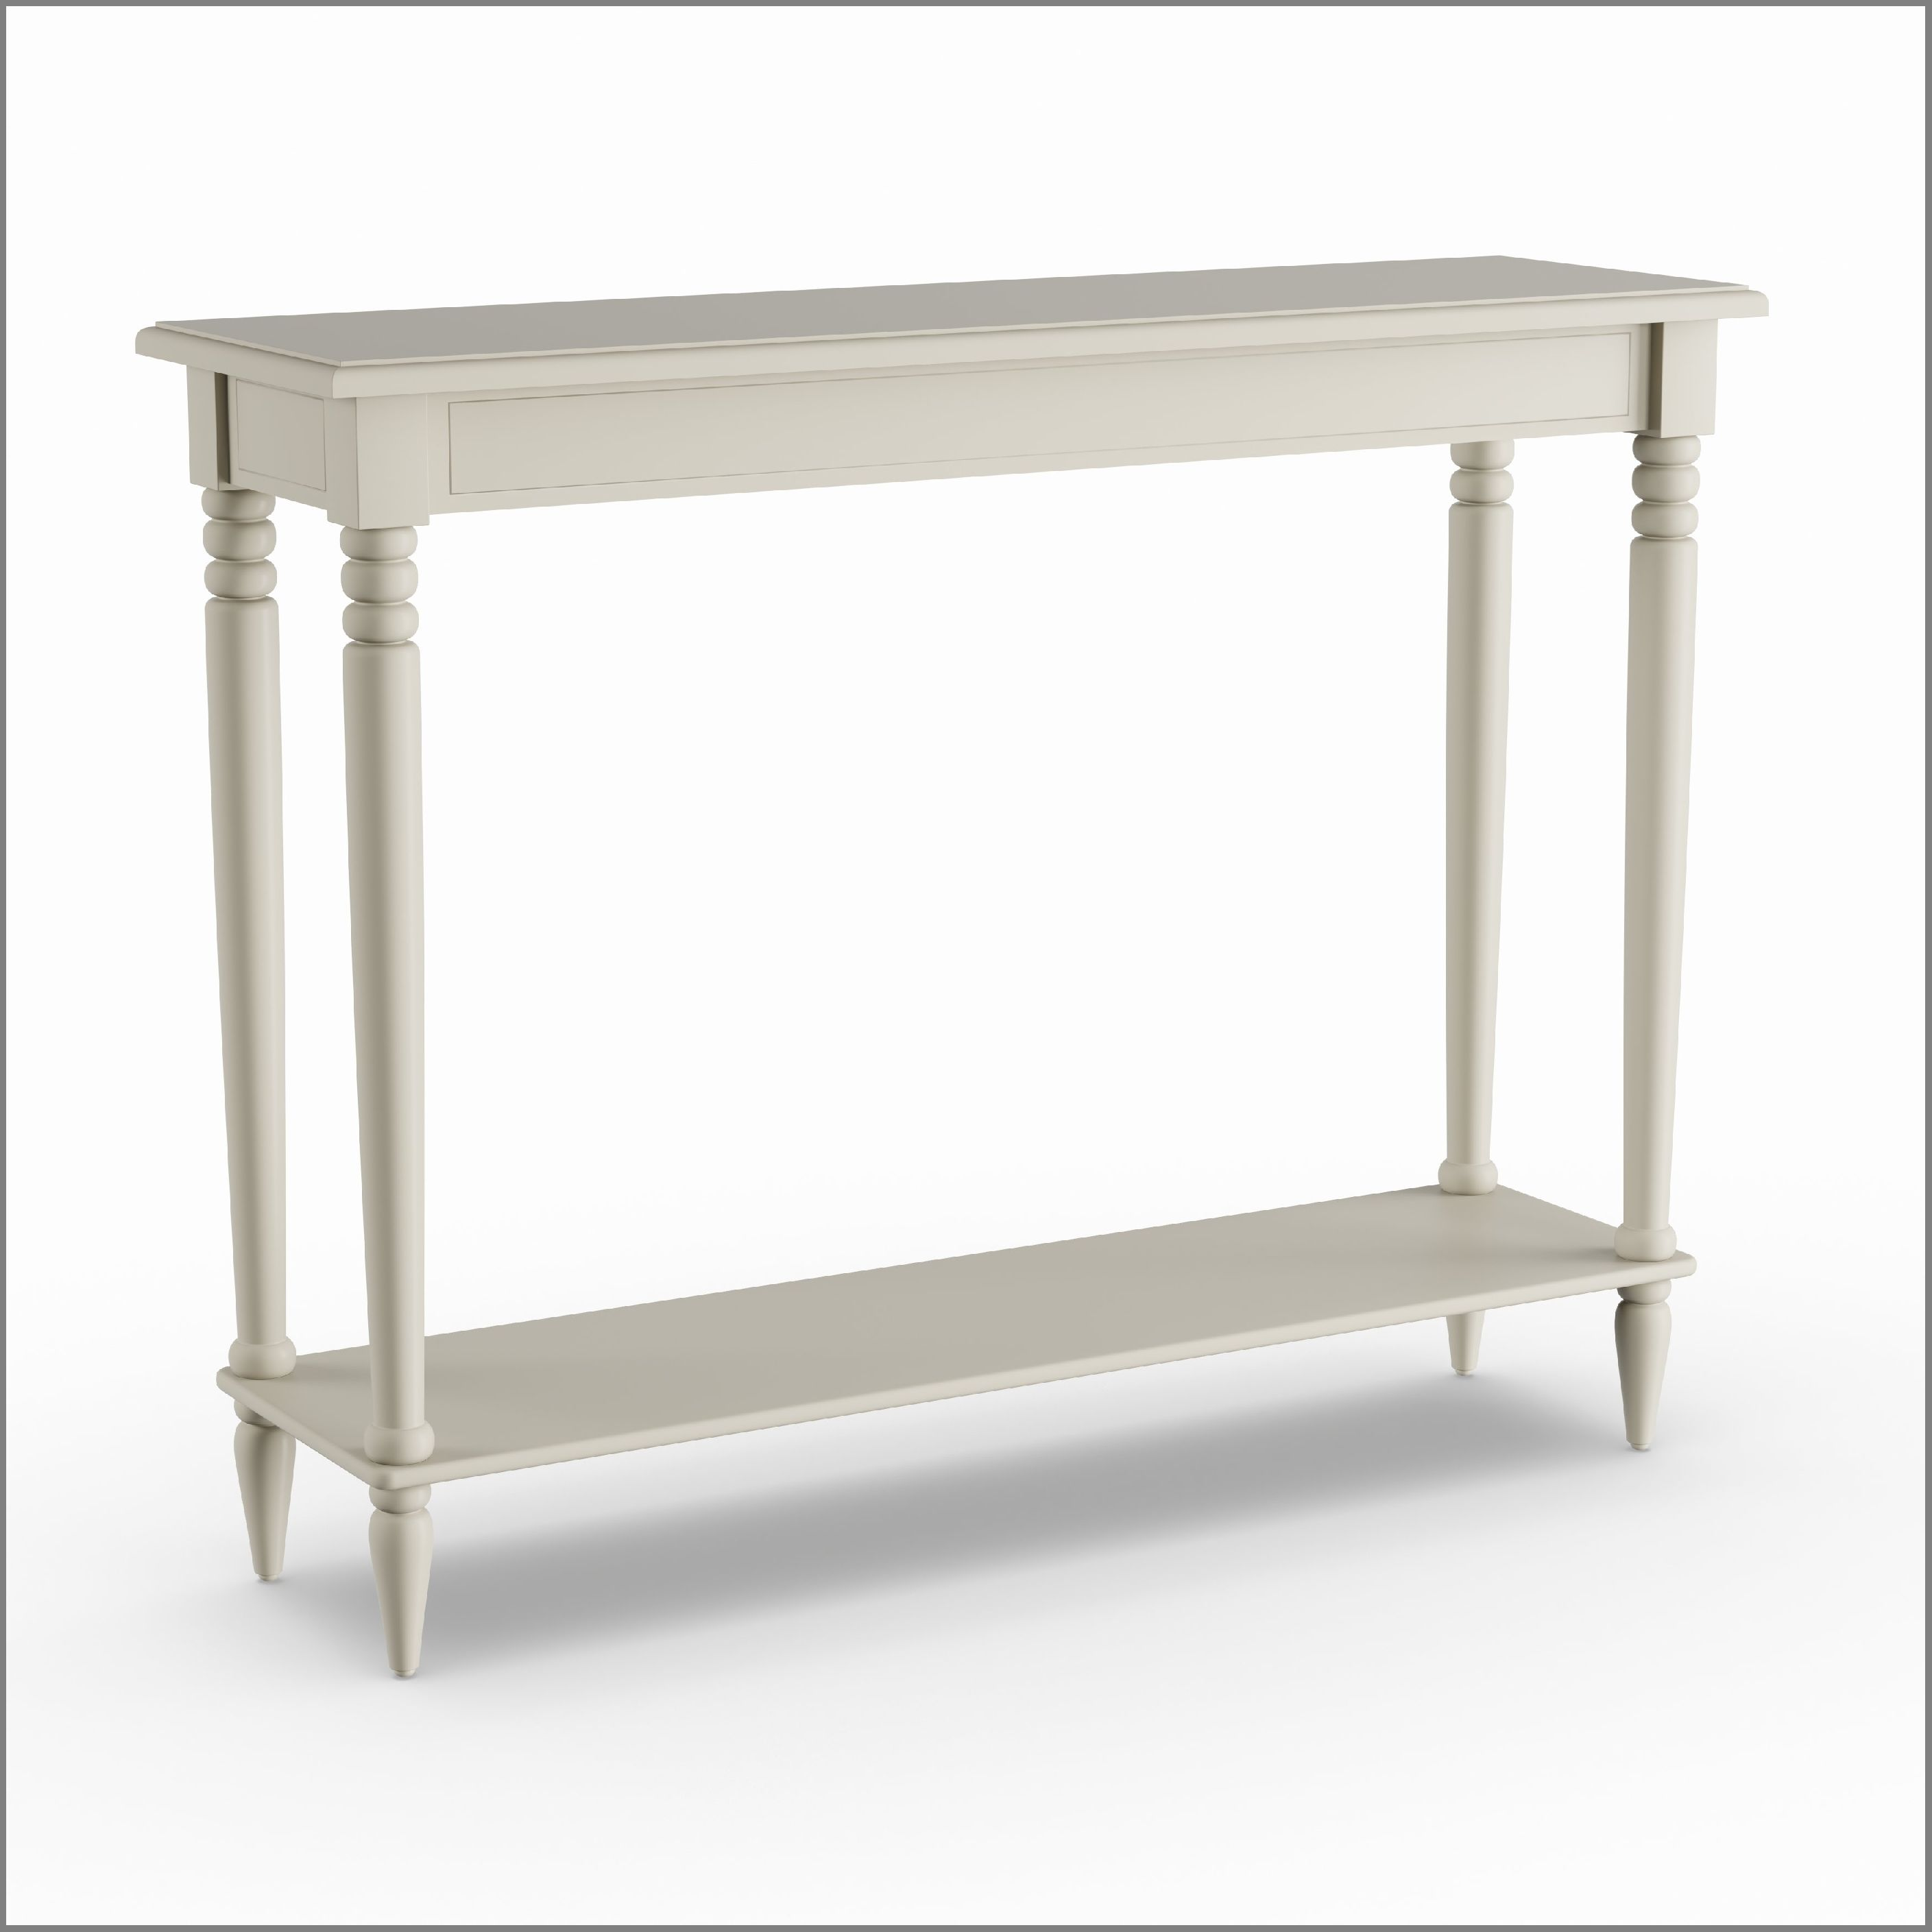 great furniture everett foyer table entrance tables accent for charming white console our best living tall thin entryway rustic farmhouse end affordable sofa square cover game